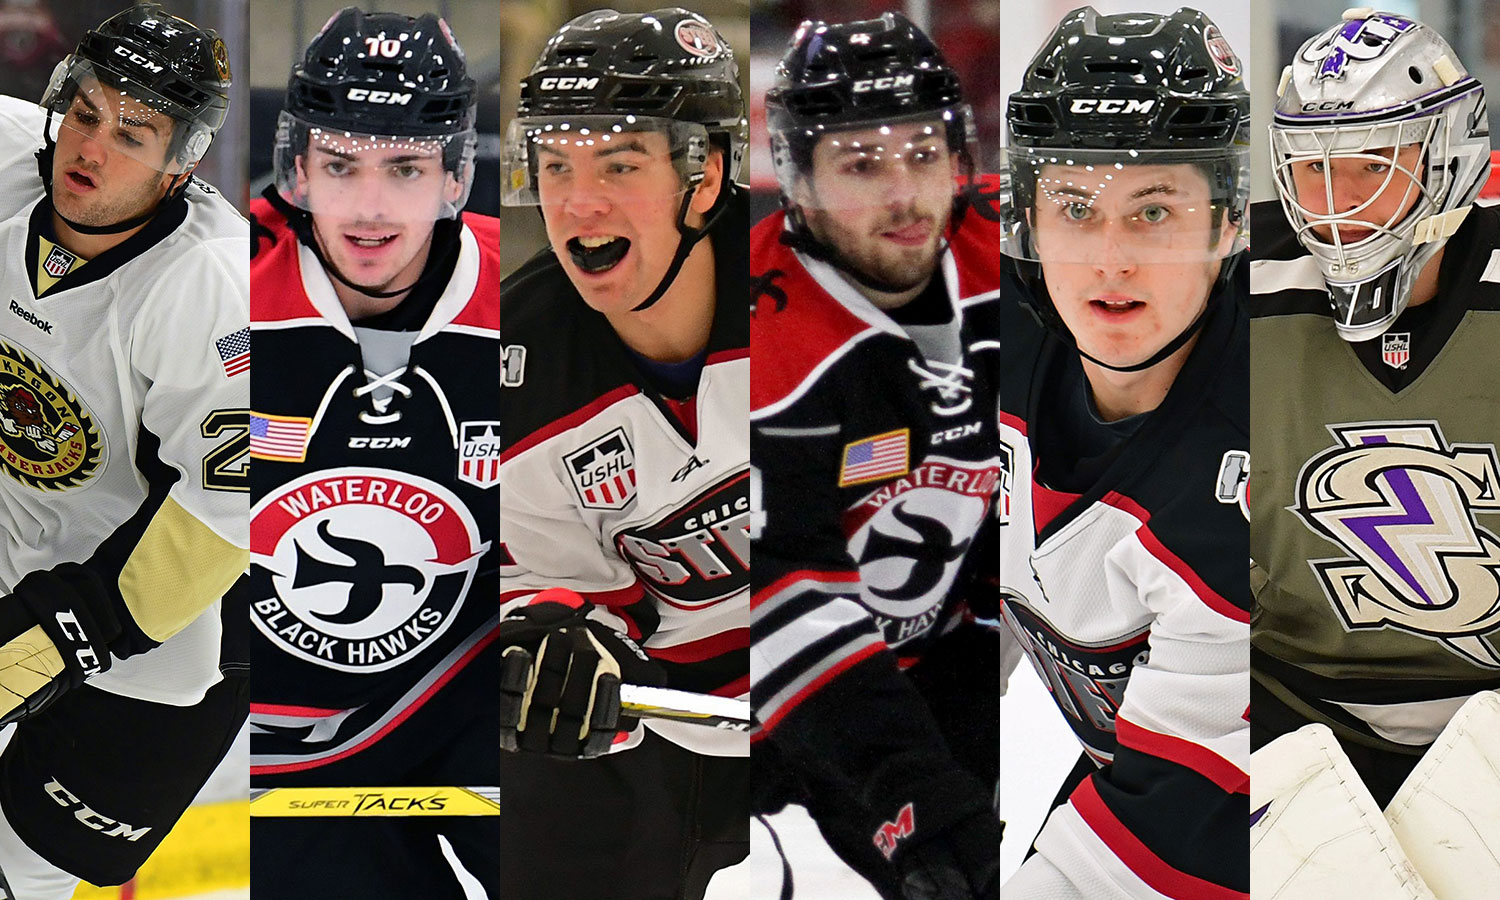 USHL: All-USHL Teams Announced